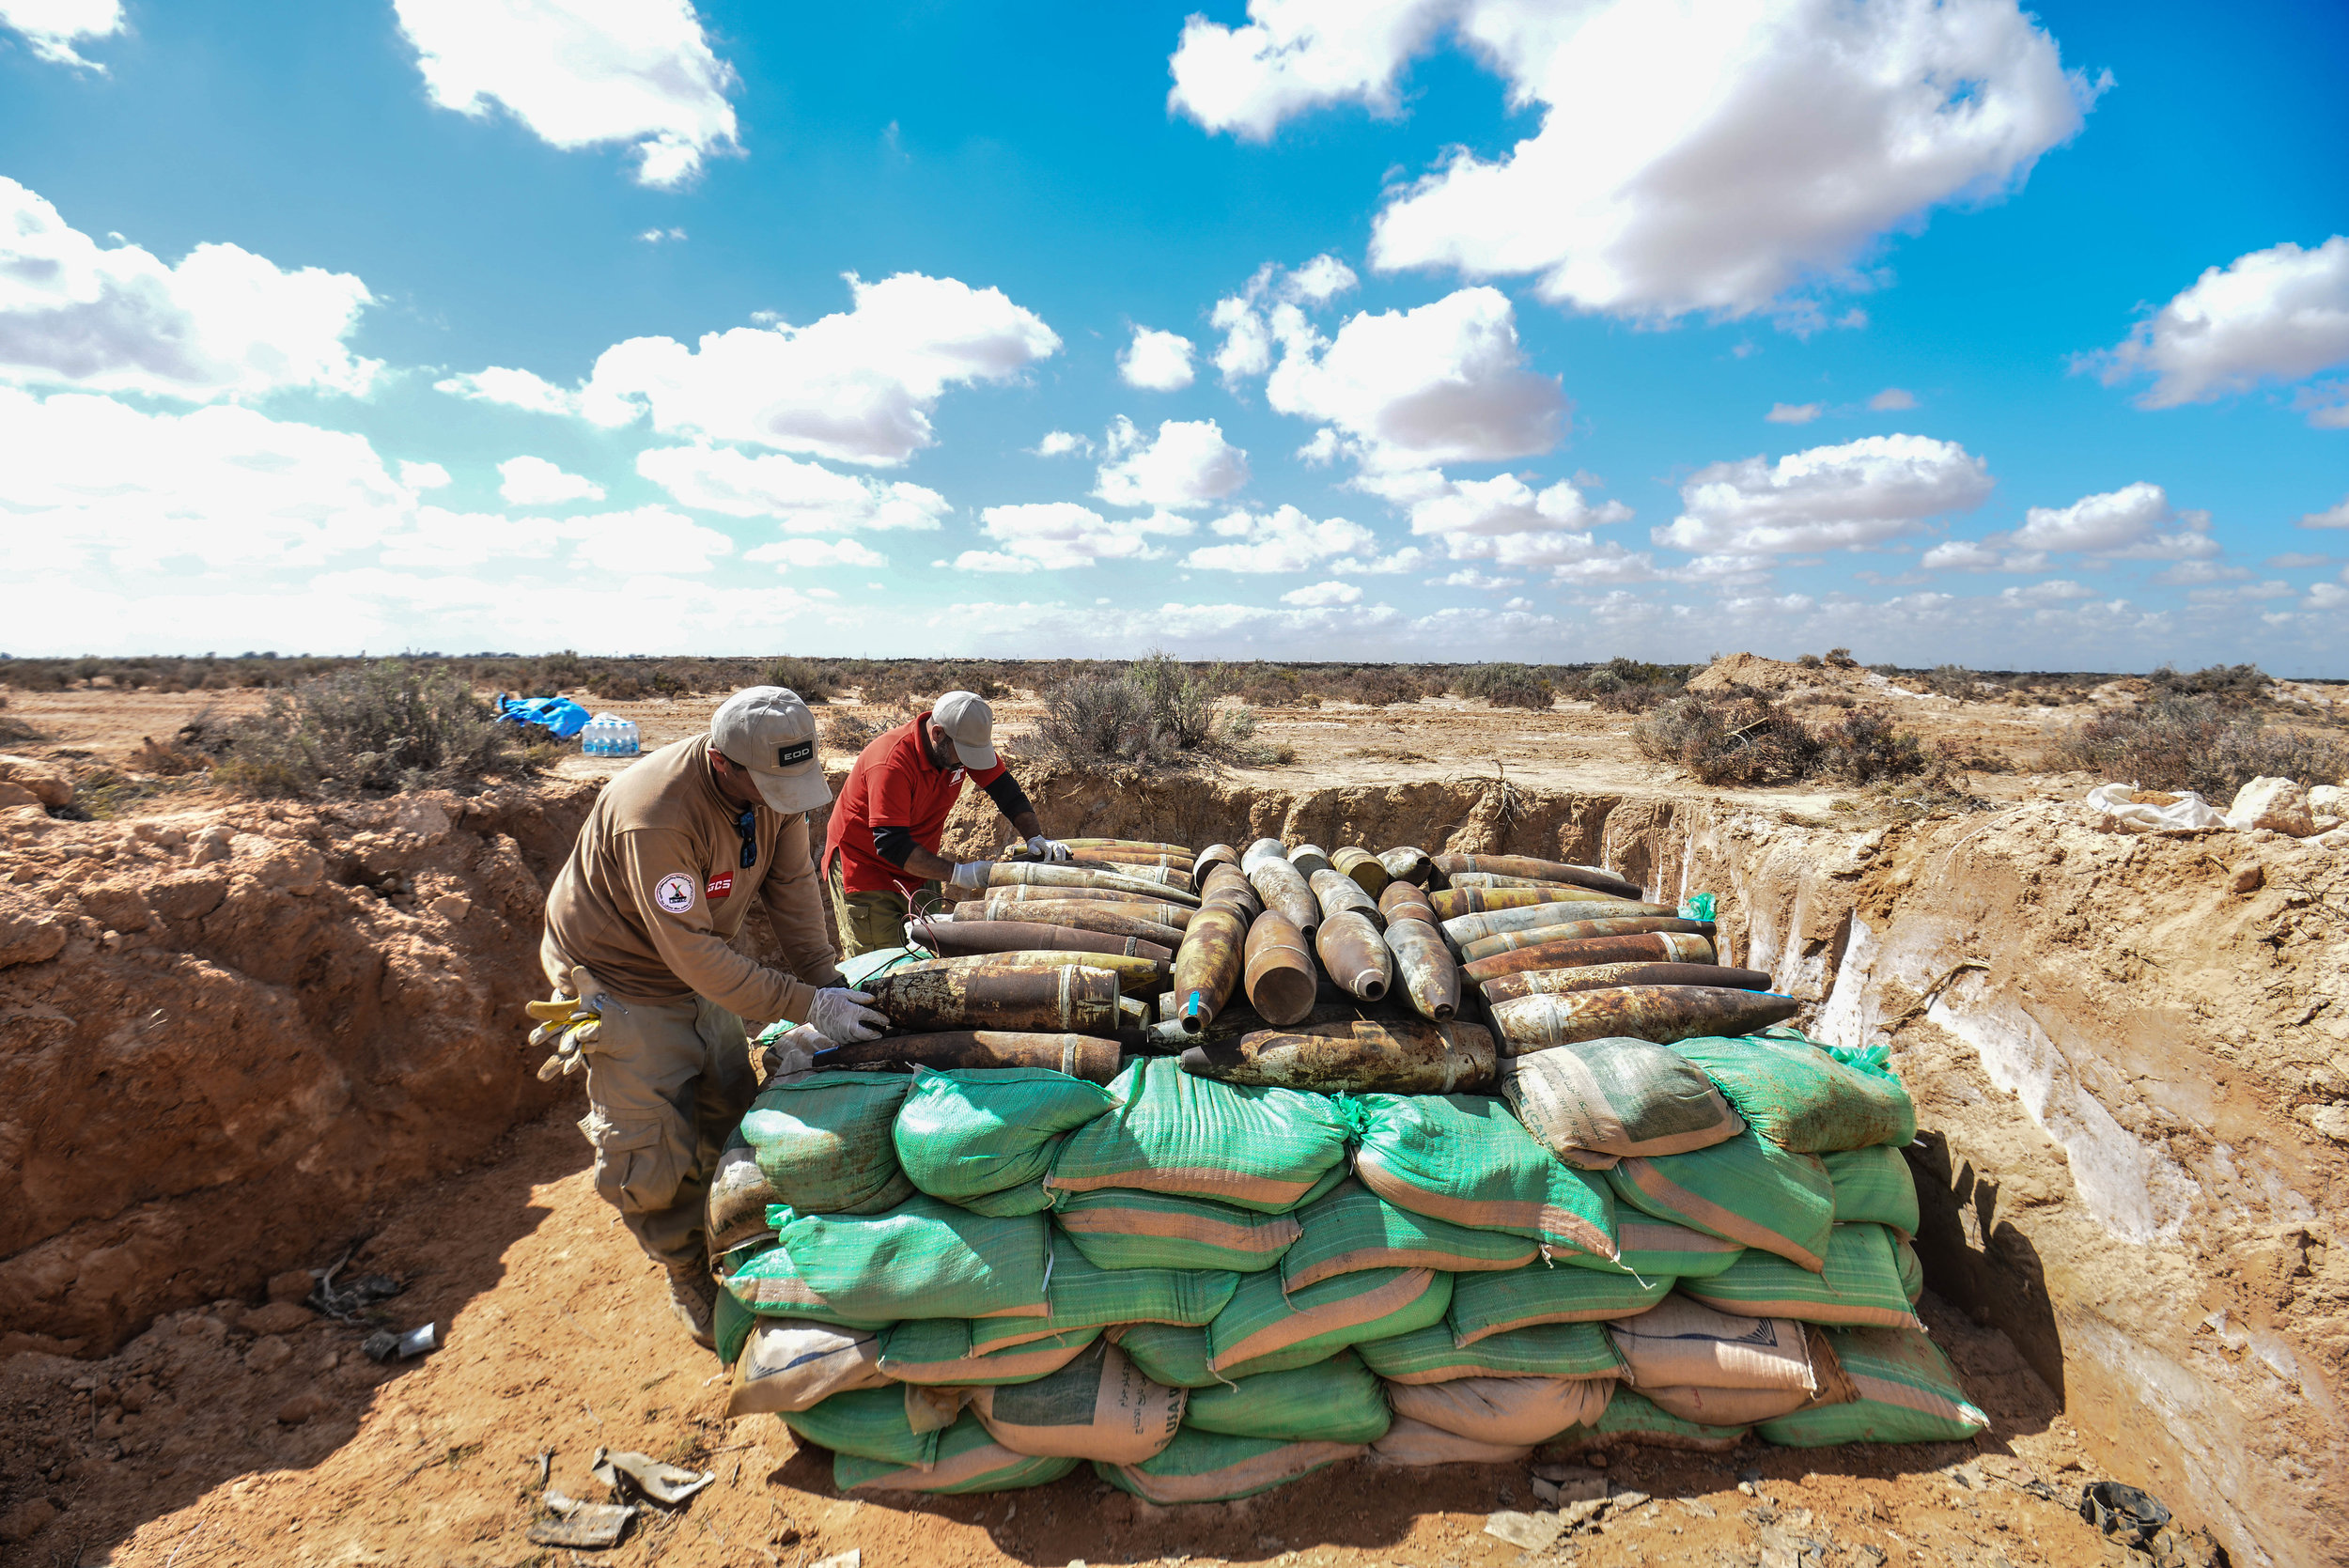 GCS EOD experts preparing controlled destruction of UXO collected at Misrata airport in April 2019